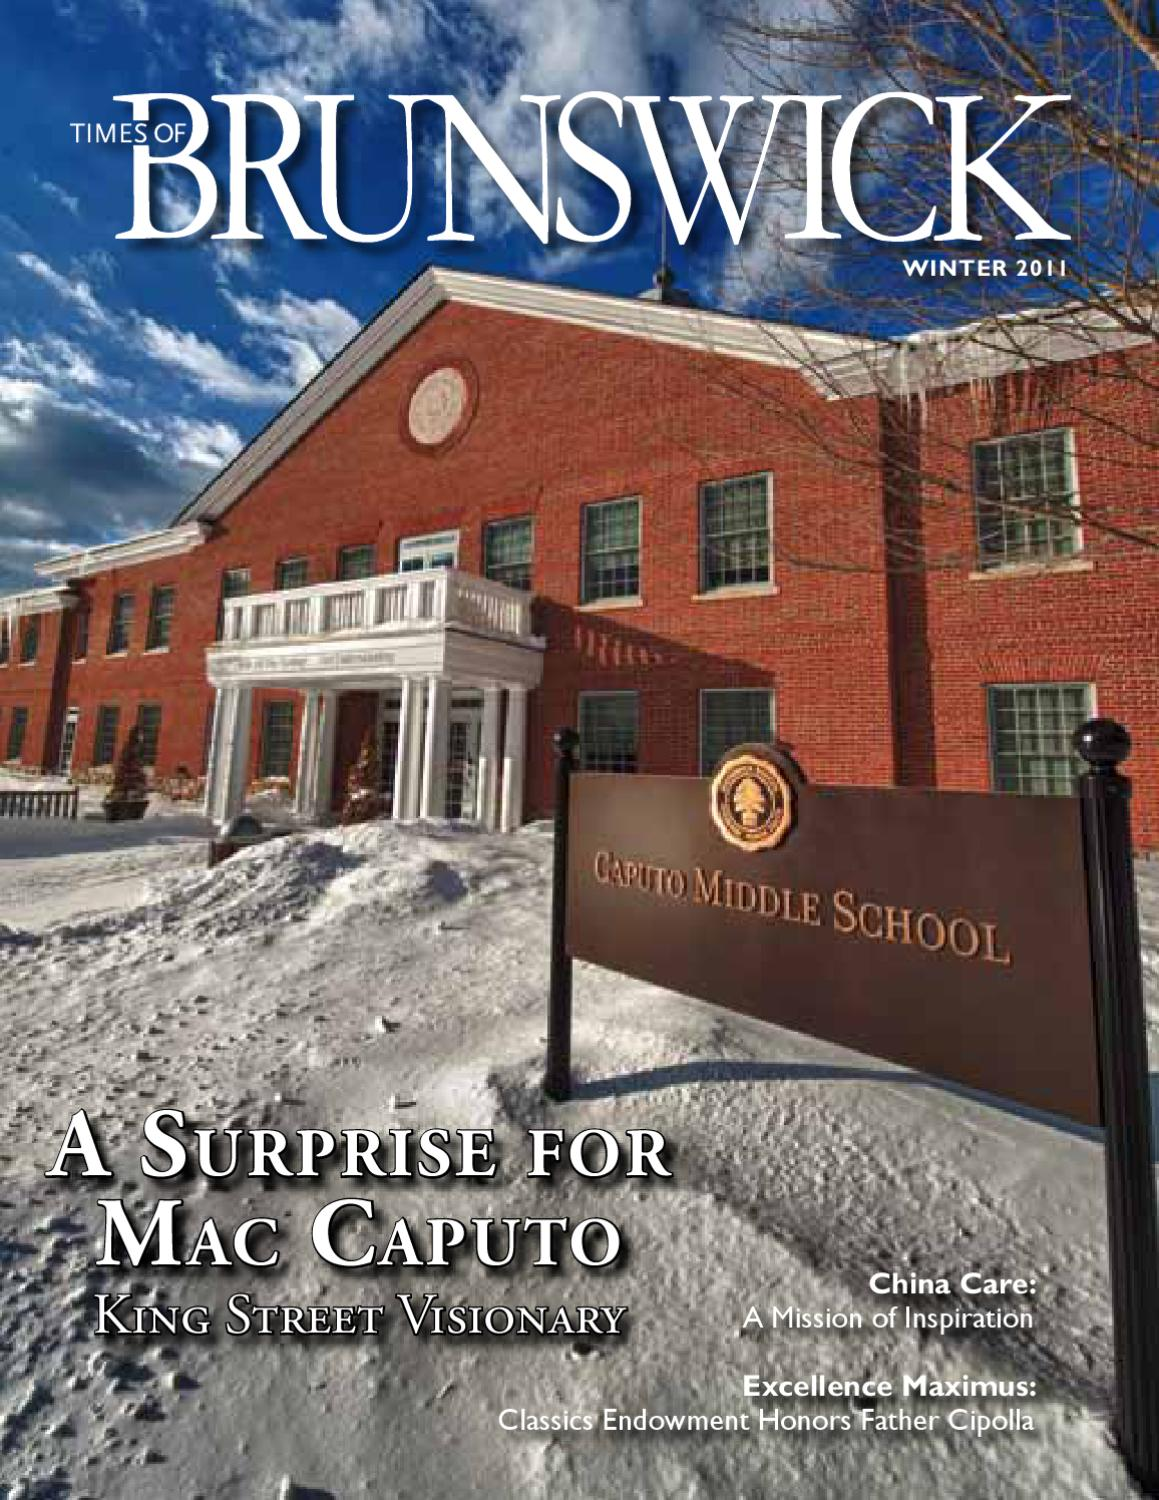 Times Of Brunswick Winter 2011 By Brunswick School Issuu